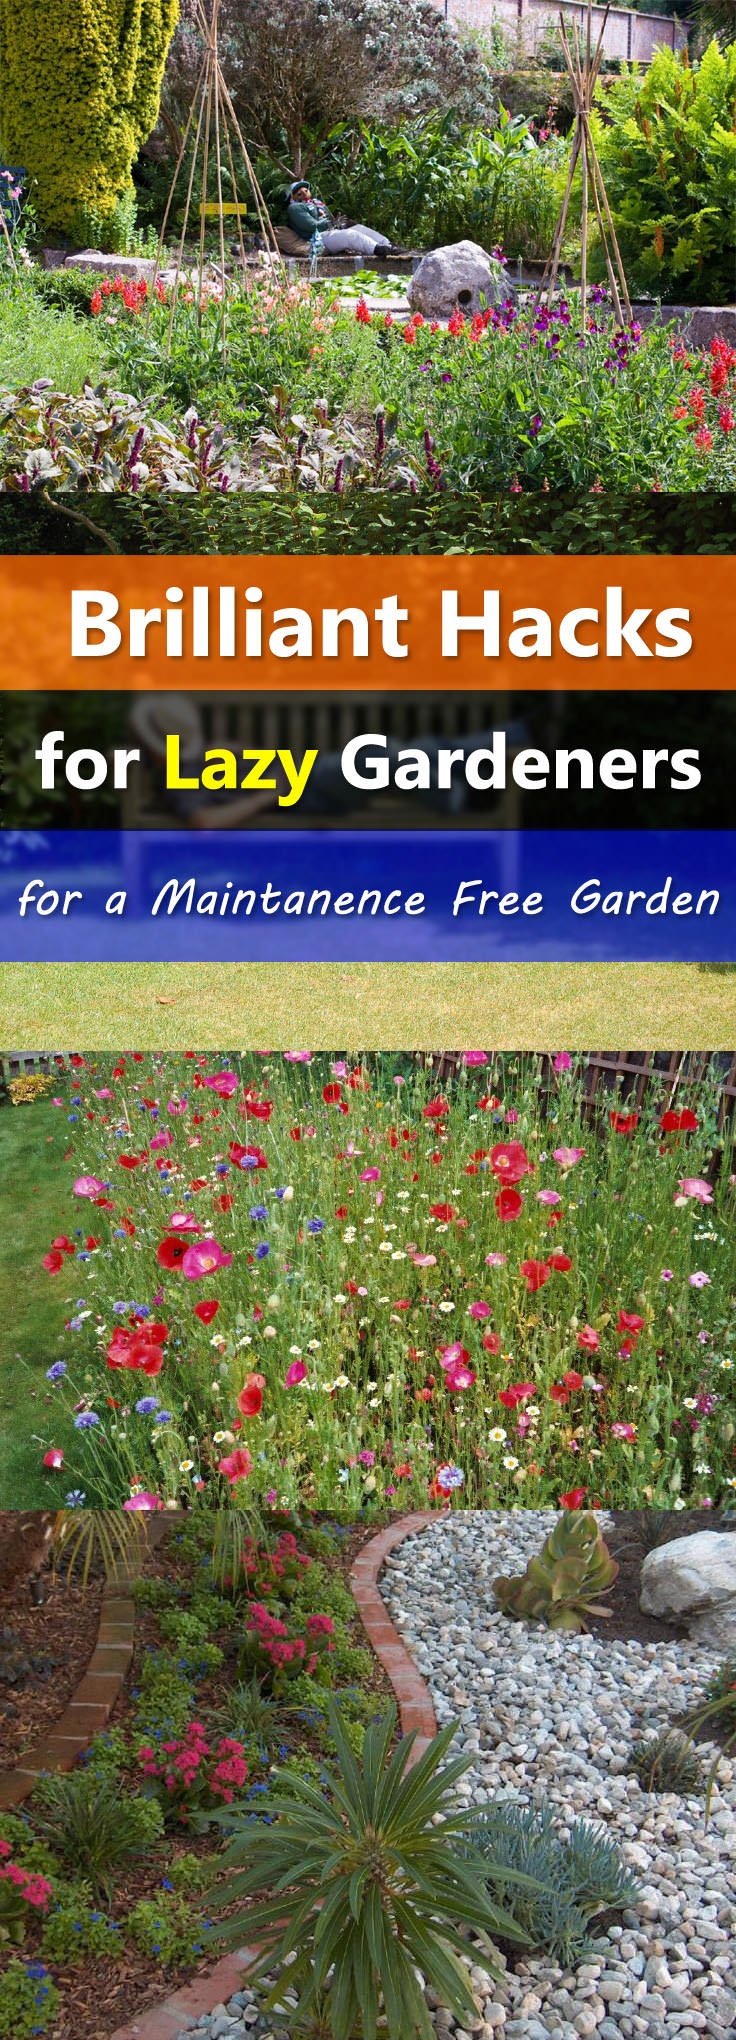 Easy Landscaping Tips For A Low Maintenance Garden Balcony - Basic landscaping tips